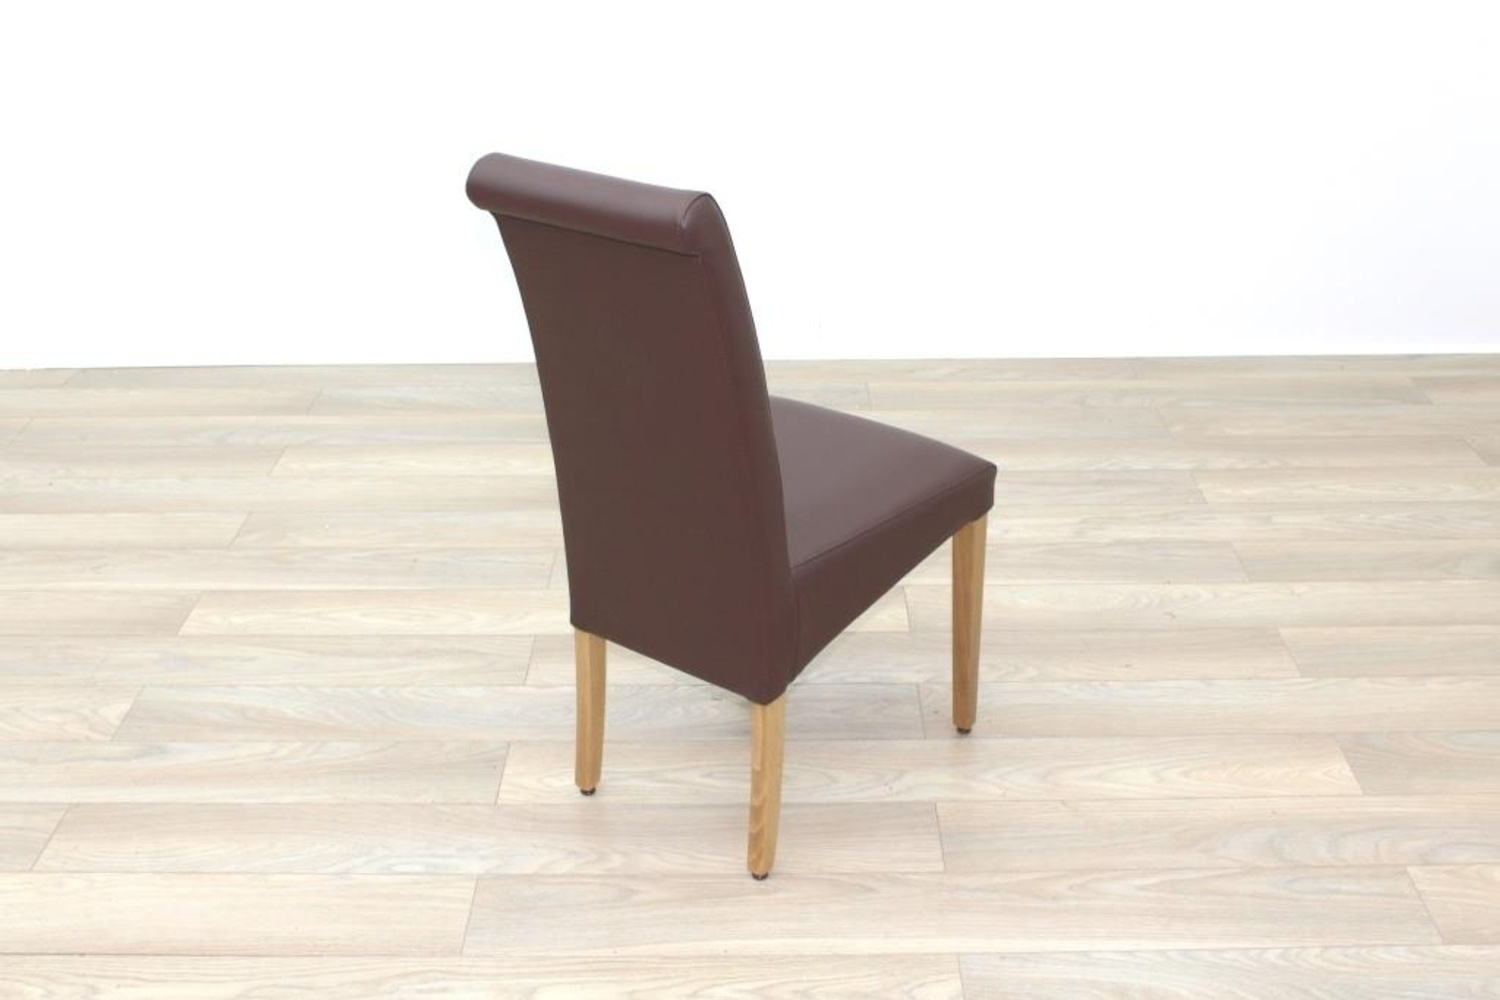 quality leather dining chairs boston interiors chair and a half new brown high back contract restaurant